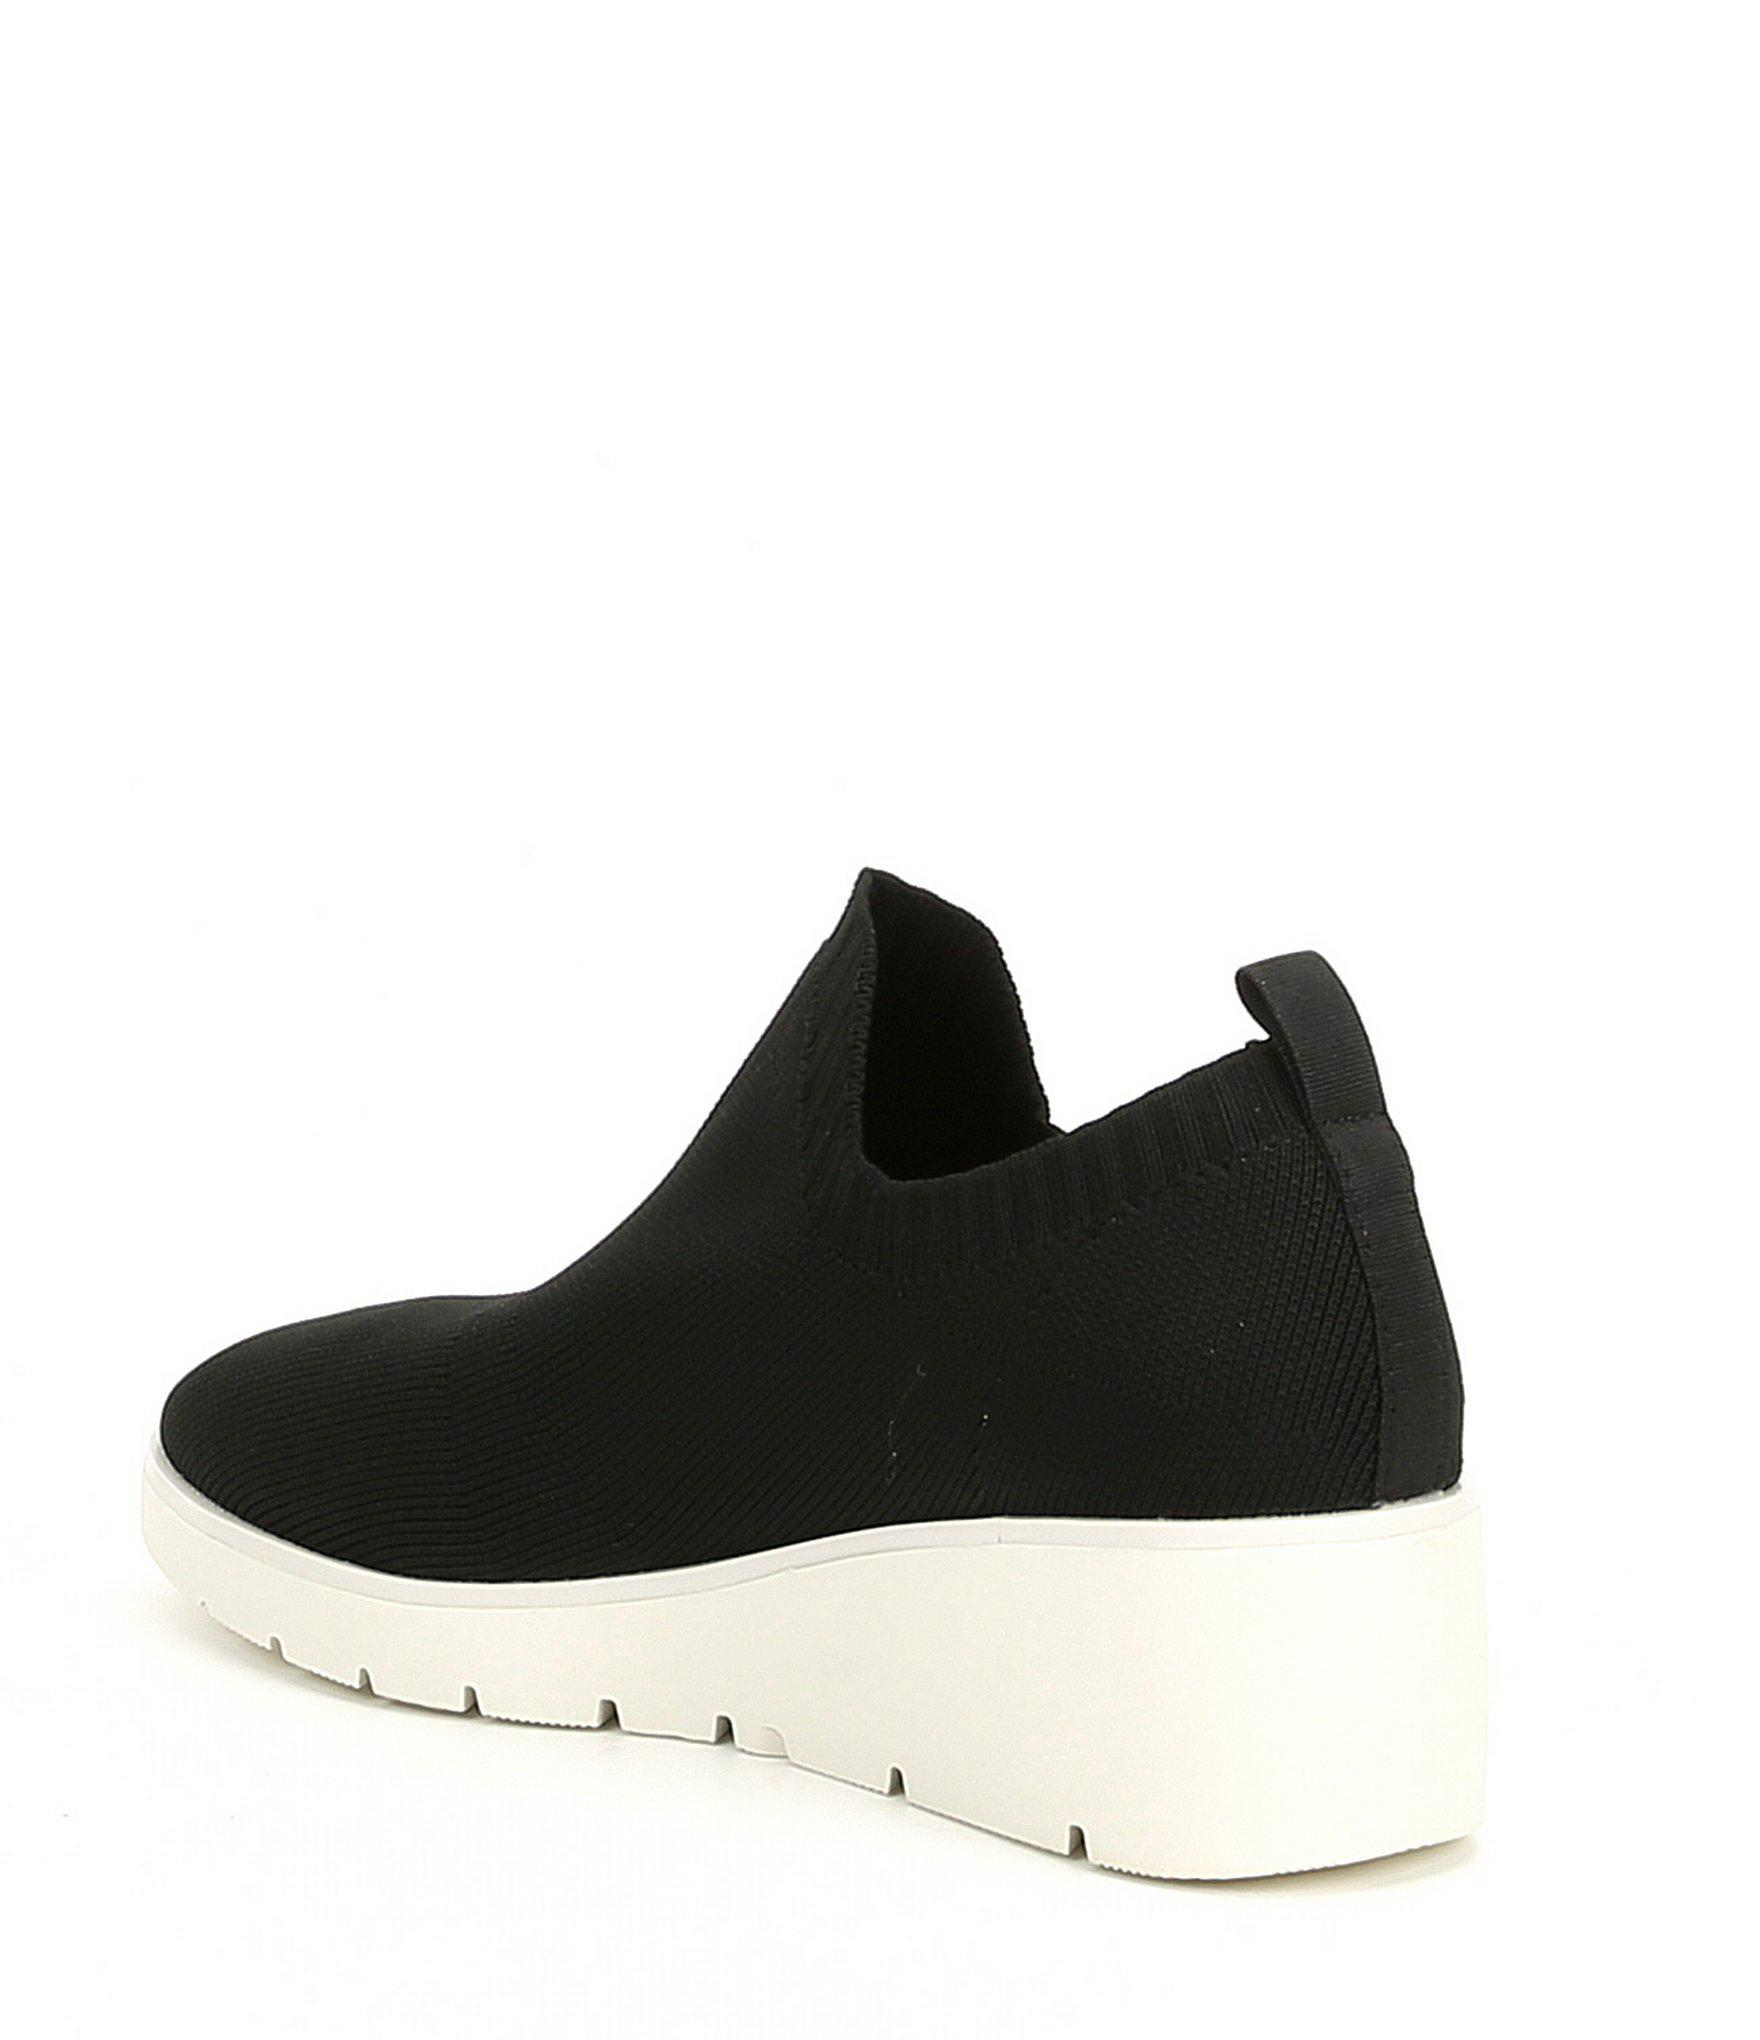 d3854fc33eb Steve Madden - Black Steven By Bell Slip On Sneakers - Lyst. View fullscreen